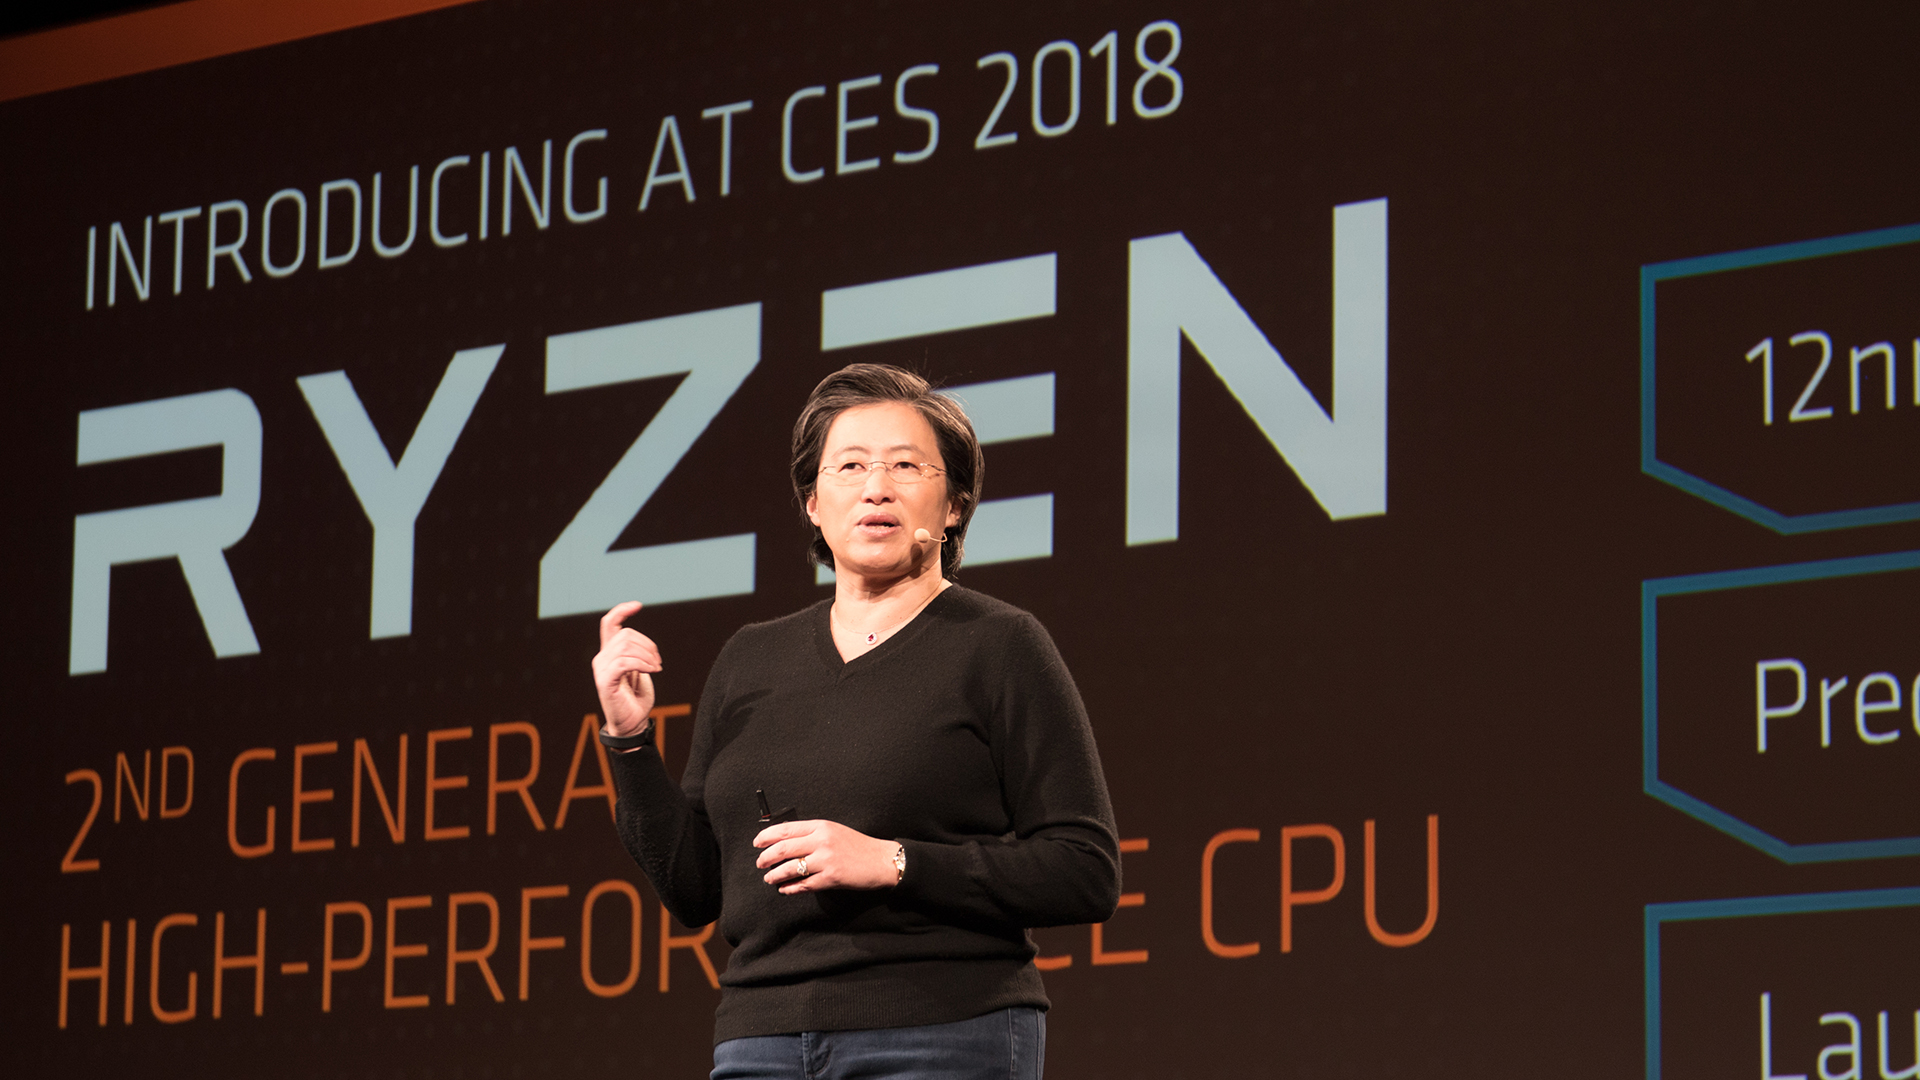 AMD Ryzen 2nd Generation: release date, news and rumors